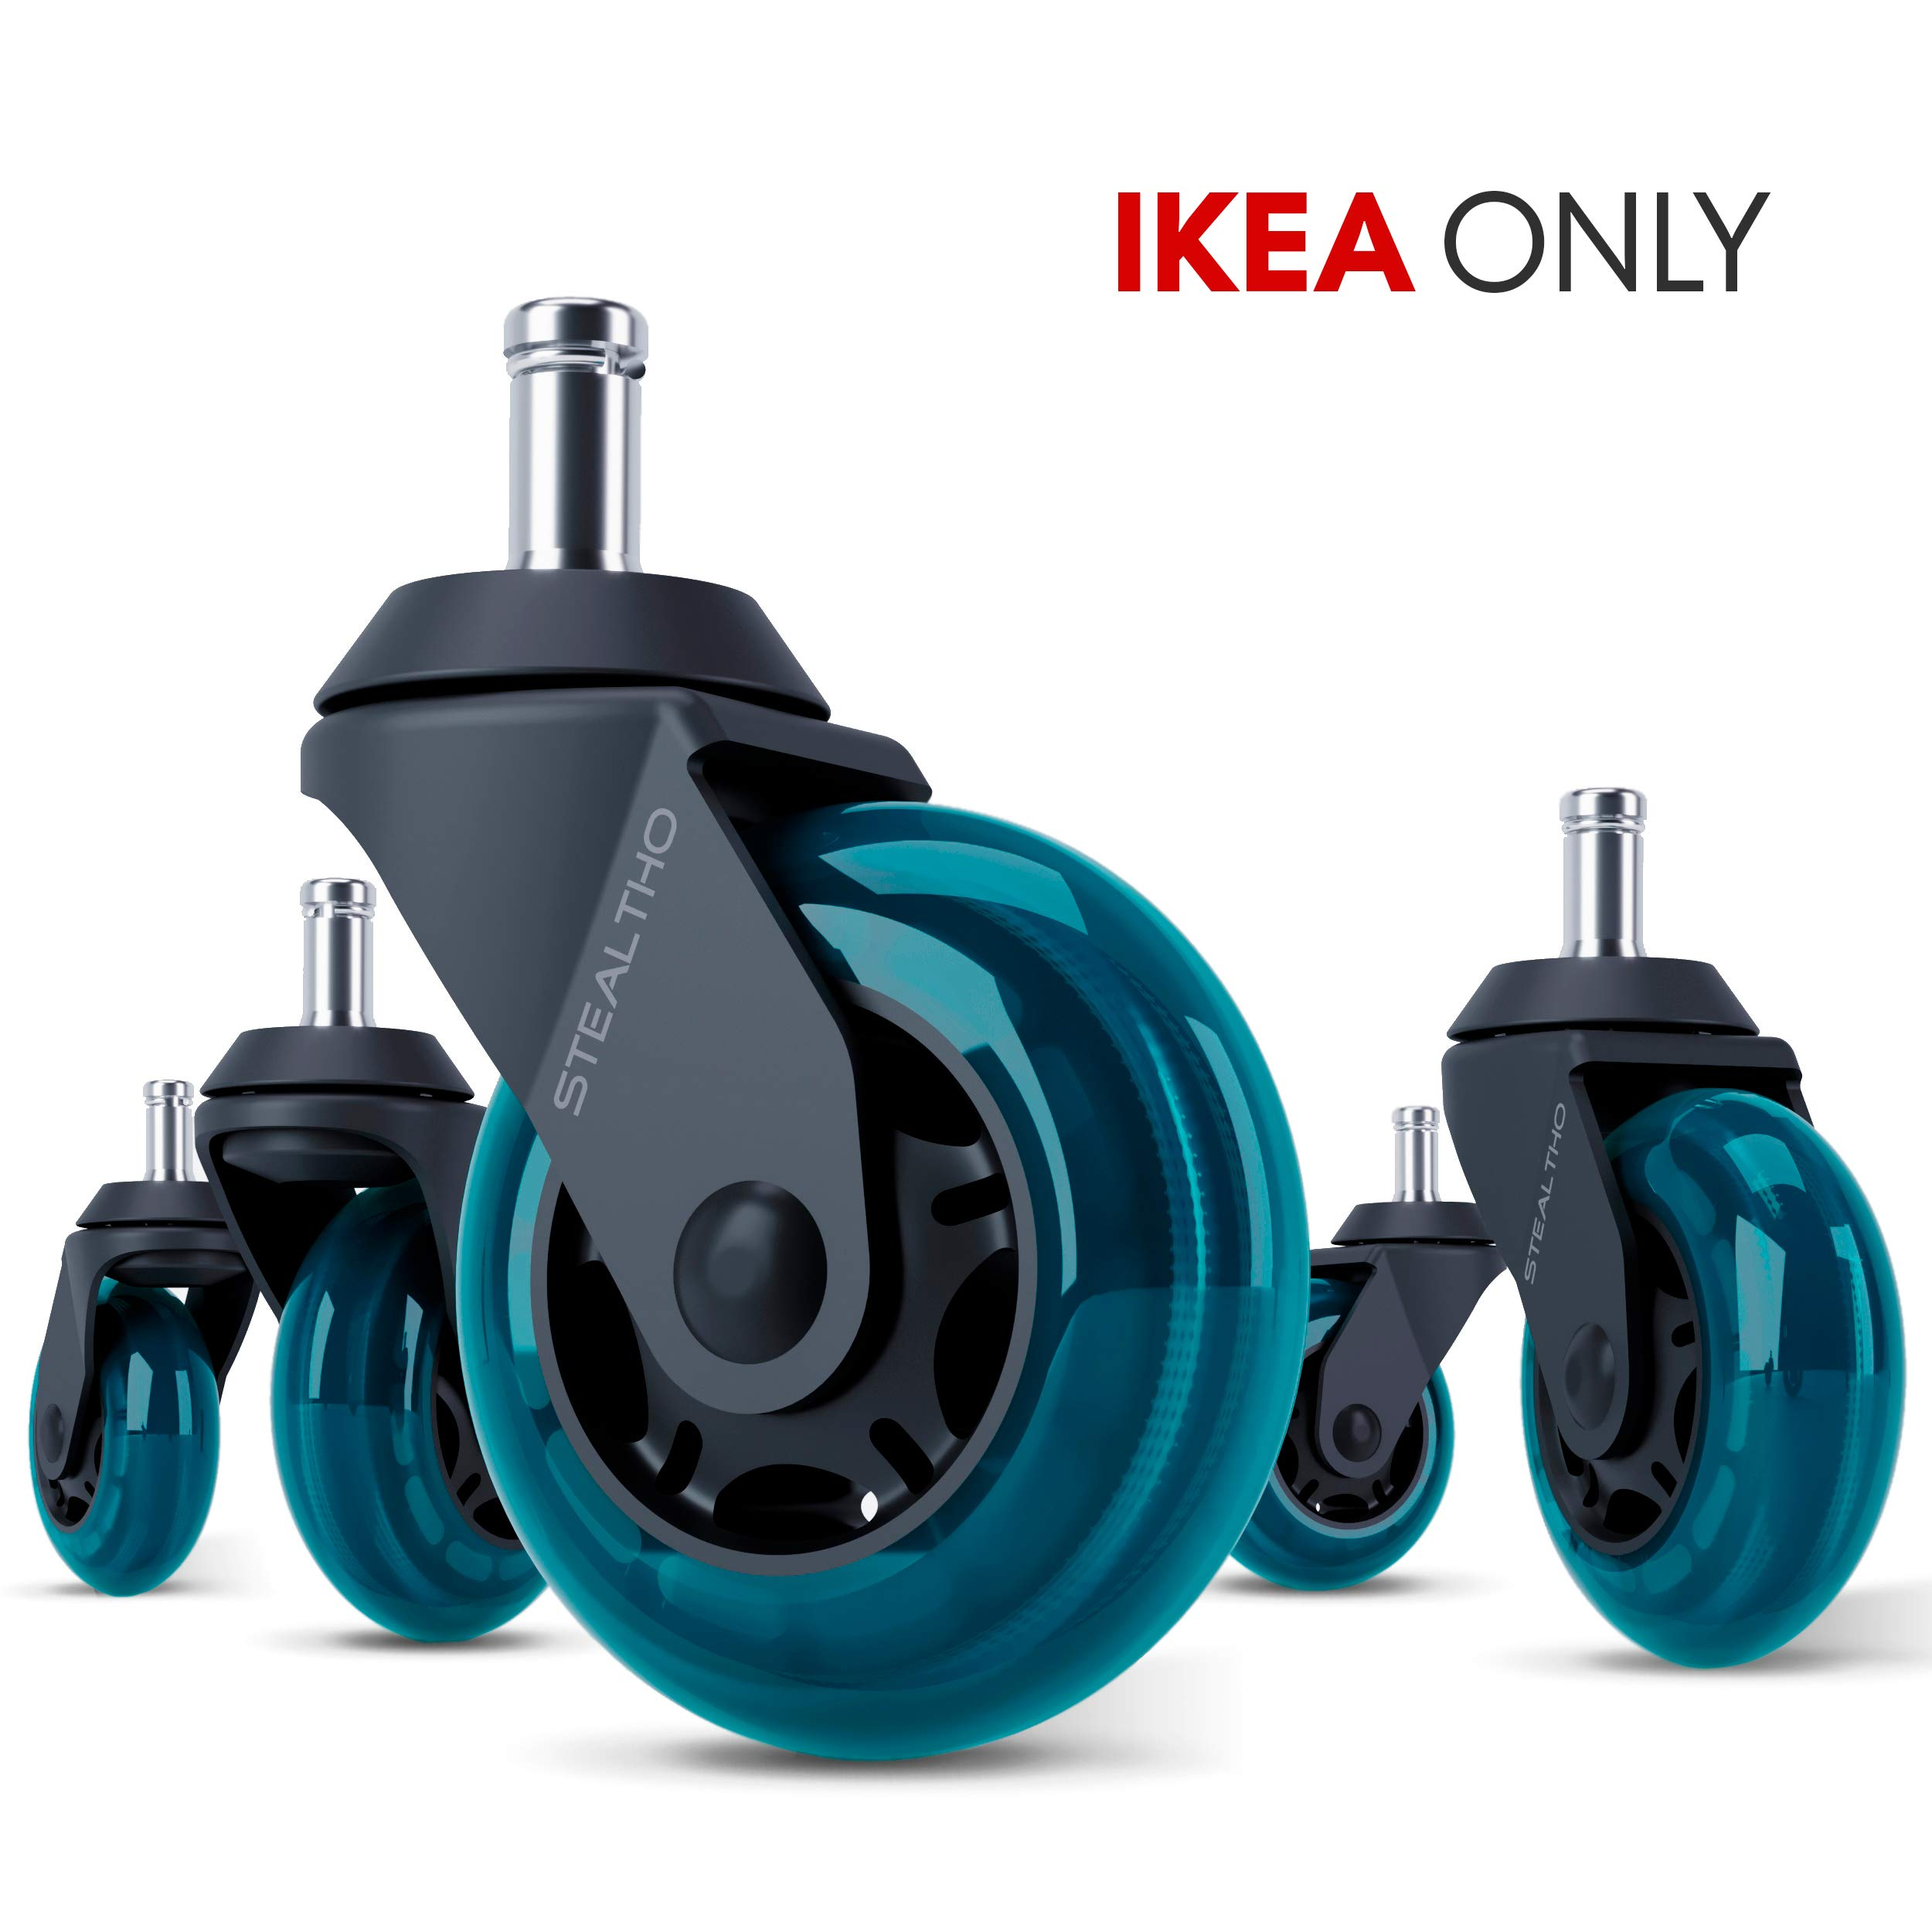 STEALTHO Replacement Office Chair Wheels for Only IKEA Set of 5 - Protect Your Floor - Quick & Quiet Rolling Over The Cables - No More Chair Mat Needed - Blue Polyurethane, IKEA Stem 3/8''